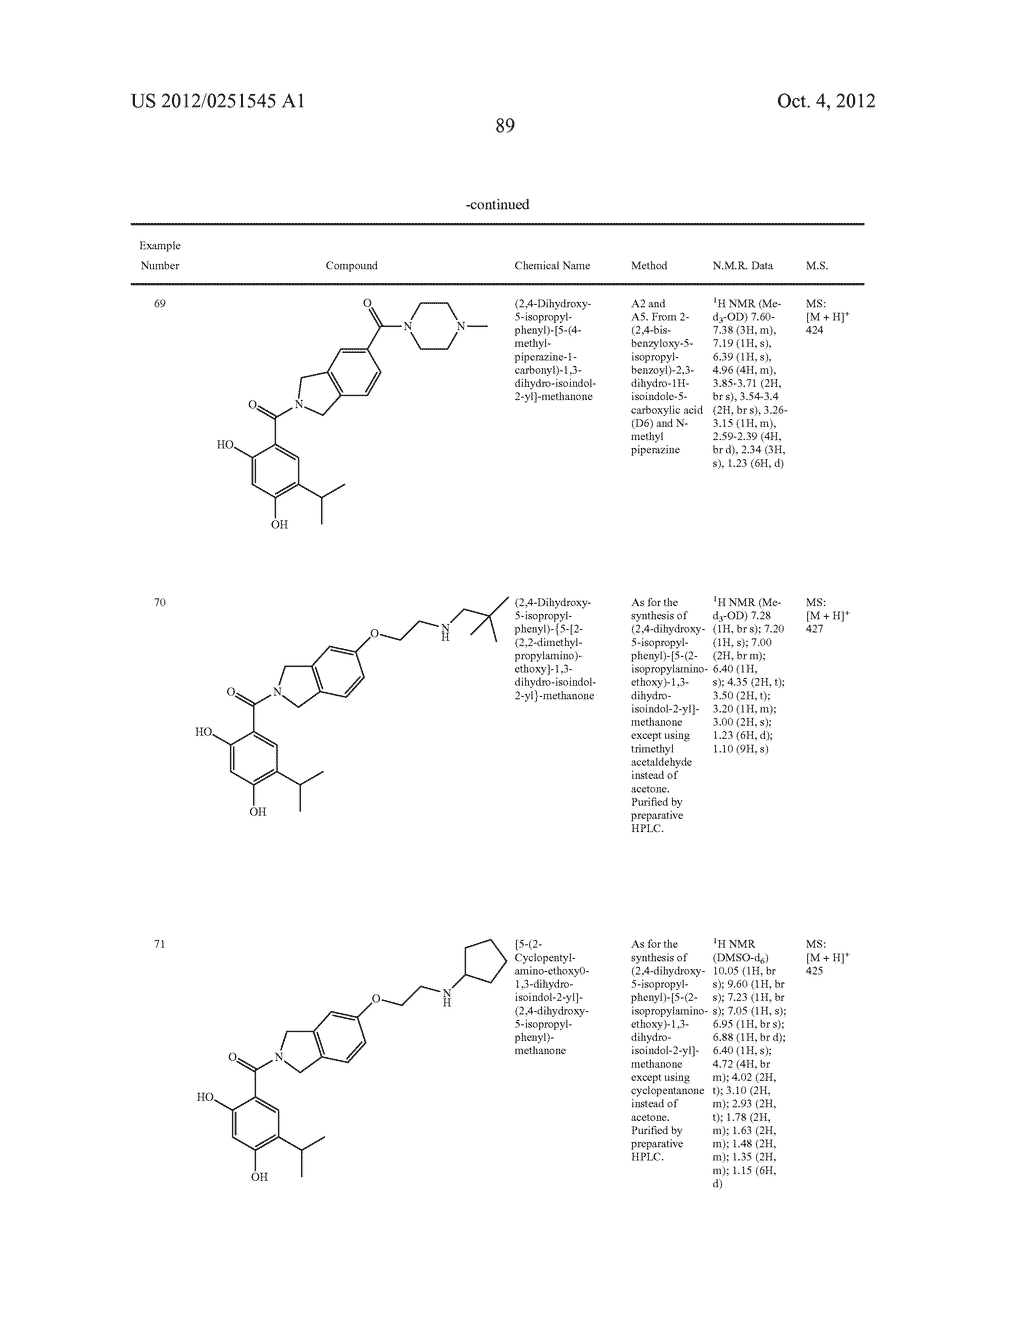 Therapeutic Combinations Of Hydroxybenzamide Derivatives As Inhibitors Of     HSP90 - diagram, schematic, and image 90